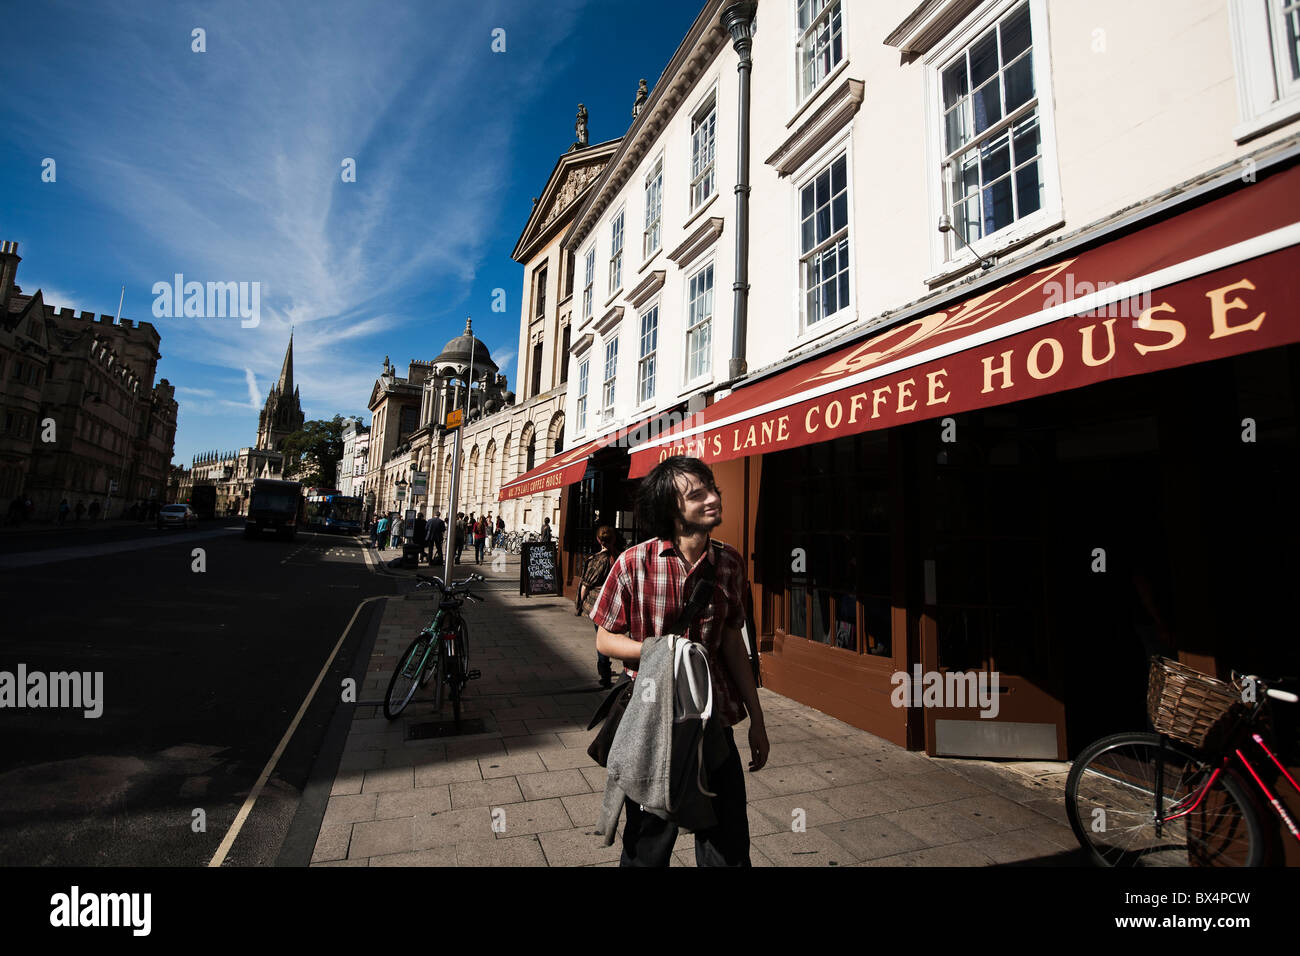 Oxford student enjoying the sun in front of Queen's Lane Coffee House - Stock Image